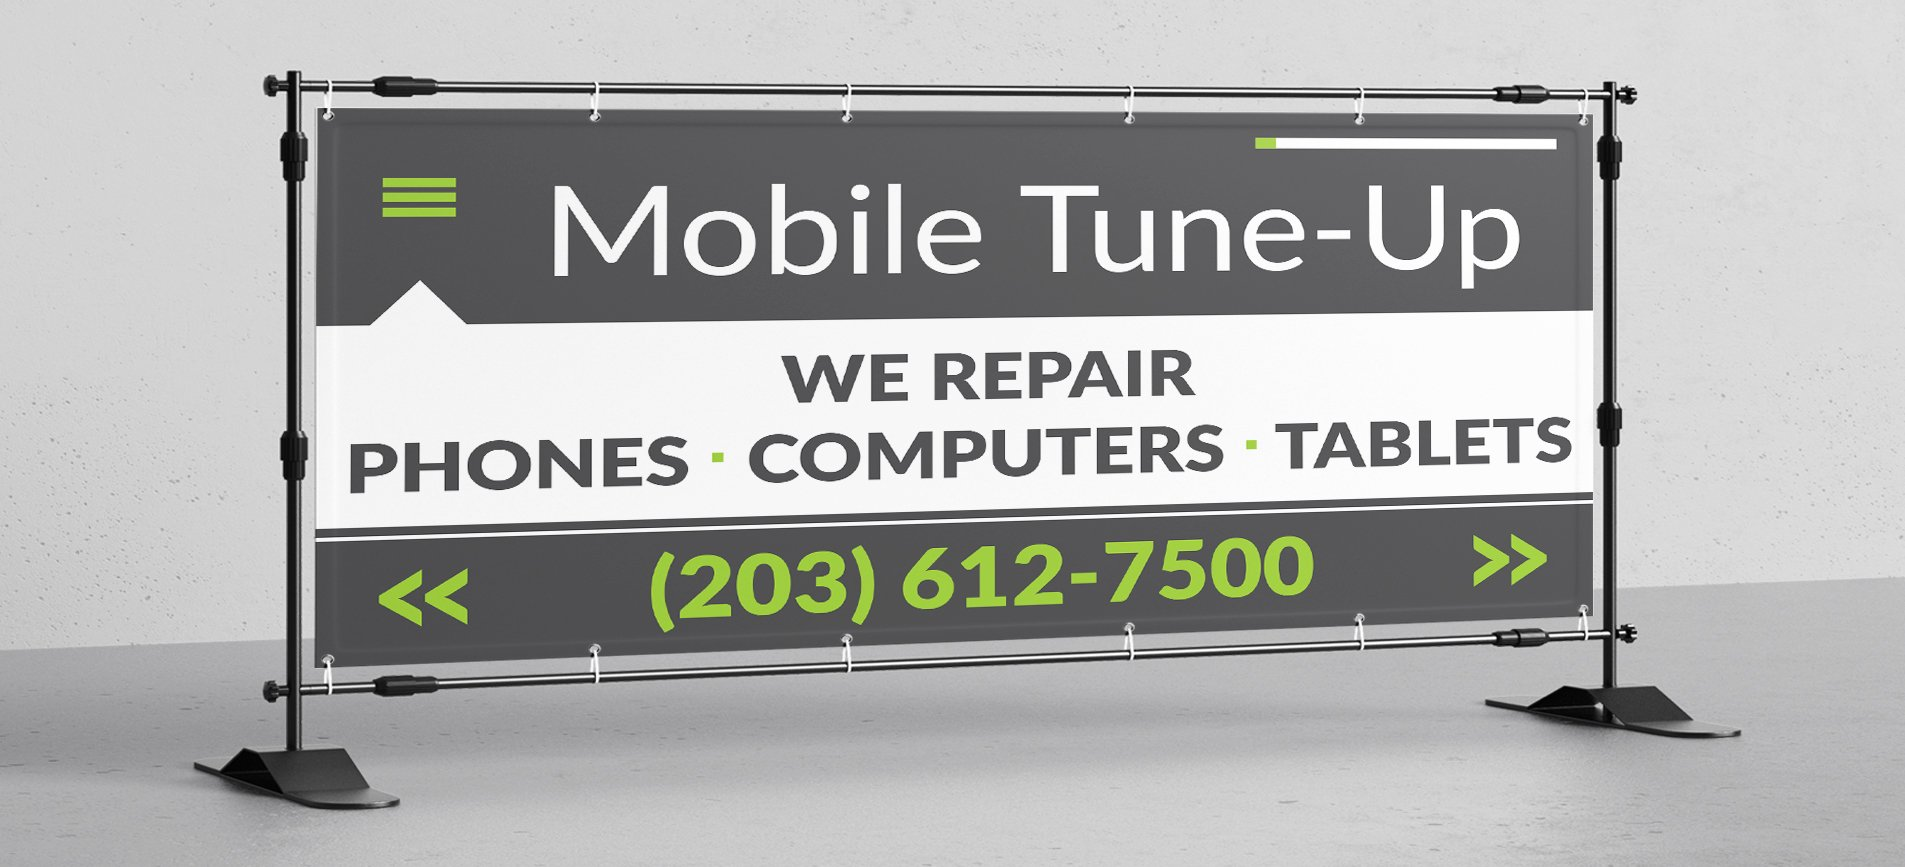 wb WE REPAIR CELL PHONES TABLETS COMPUTERS Vinyl Banner Sign 3x8